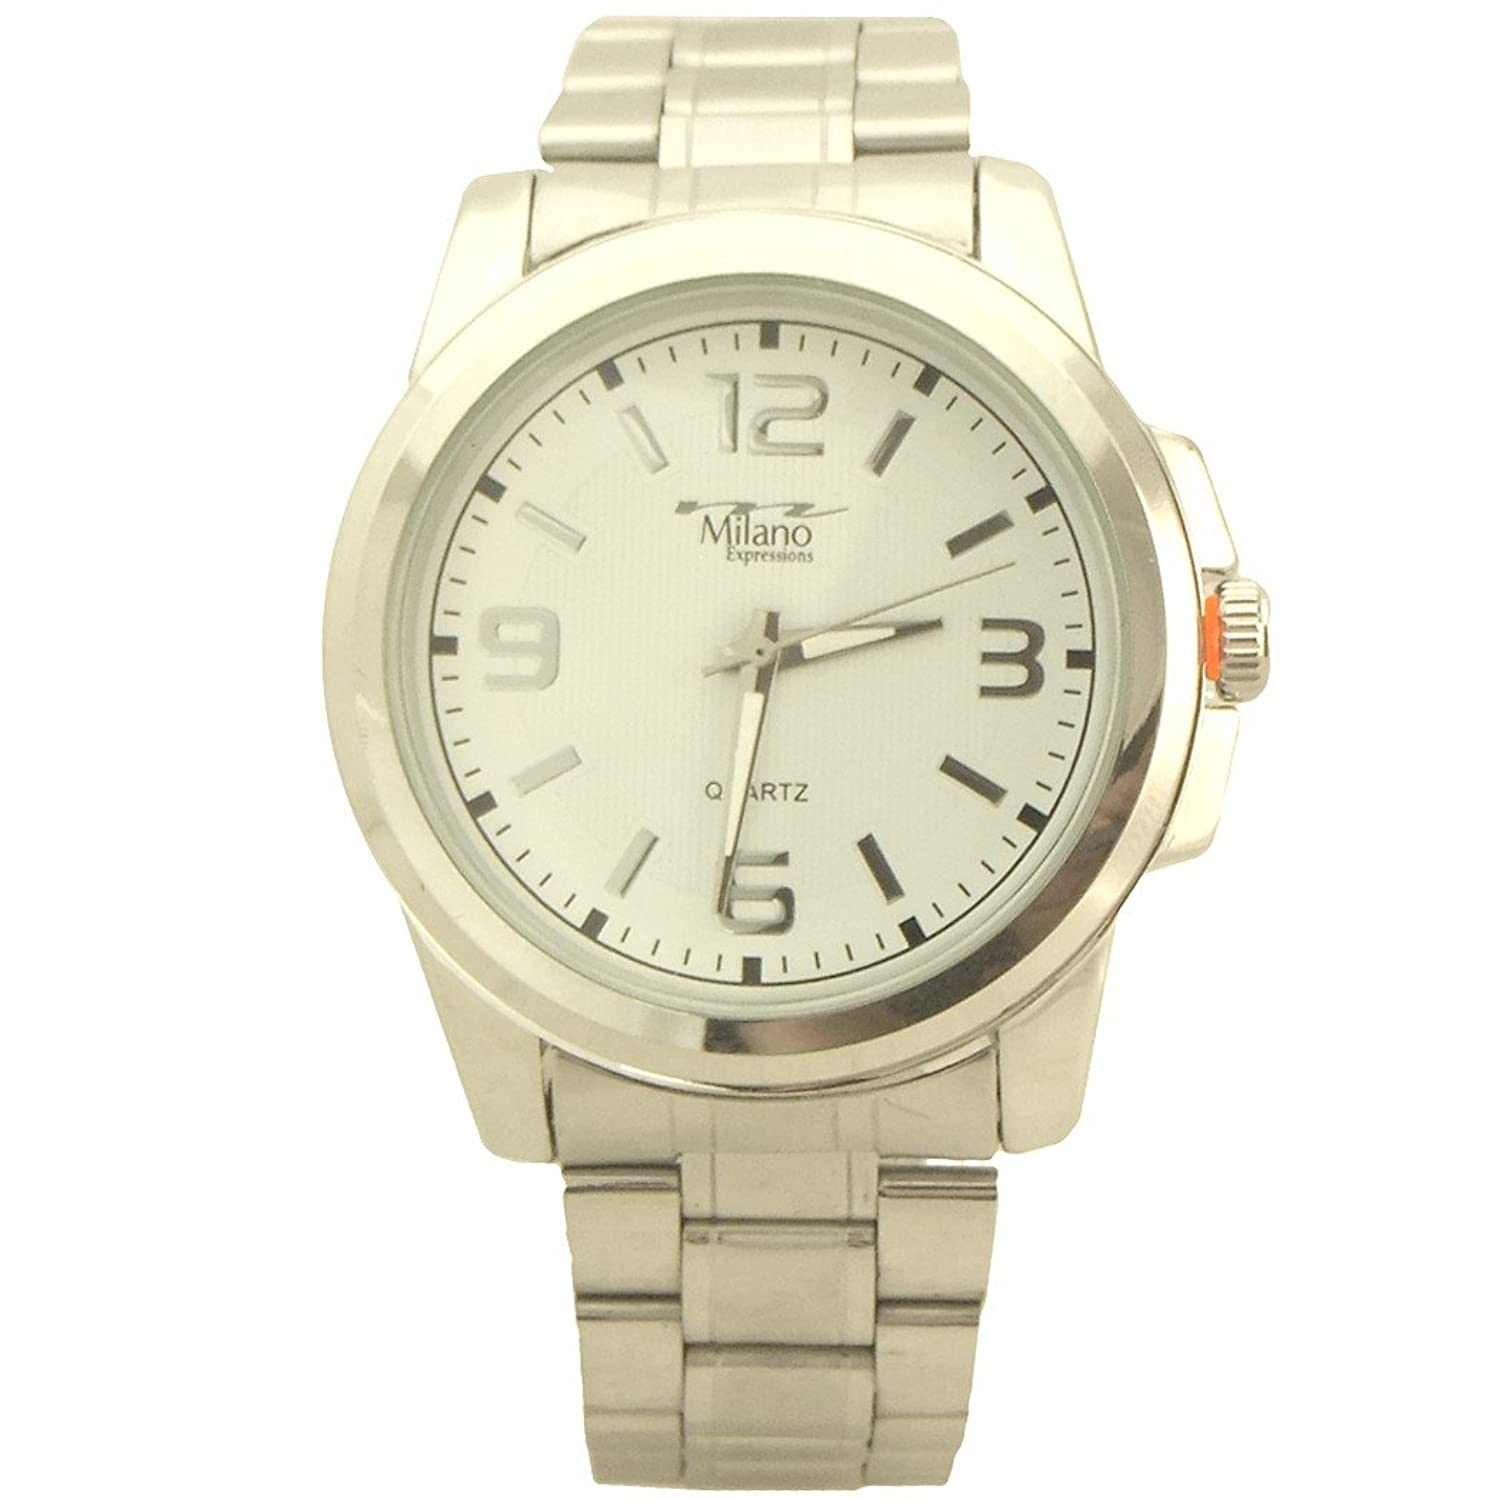 Amazon.com: Milano Expressions Dress style Quartz Mens Metal Watch white and silver tone - 1: Watches